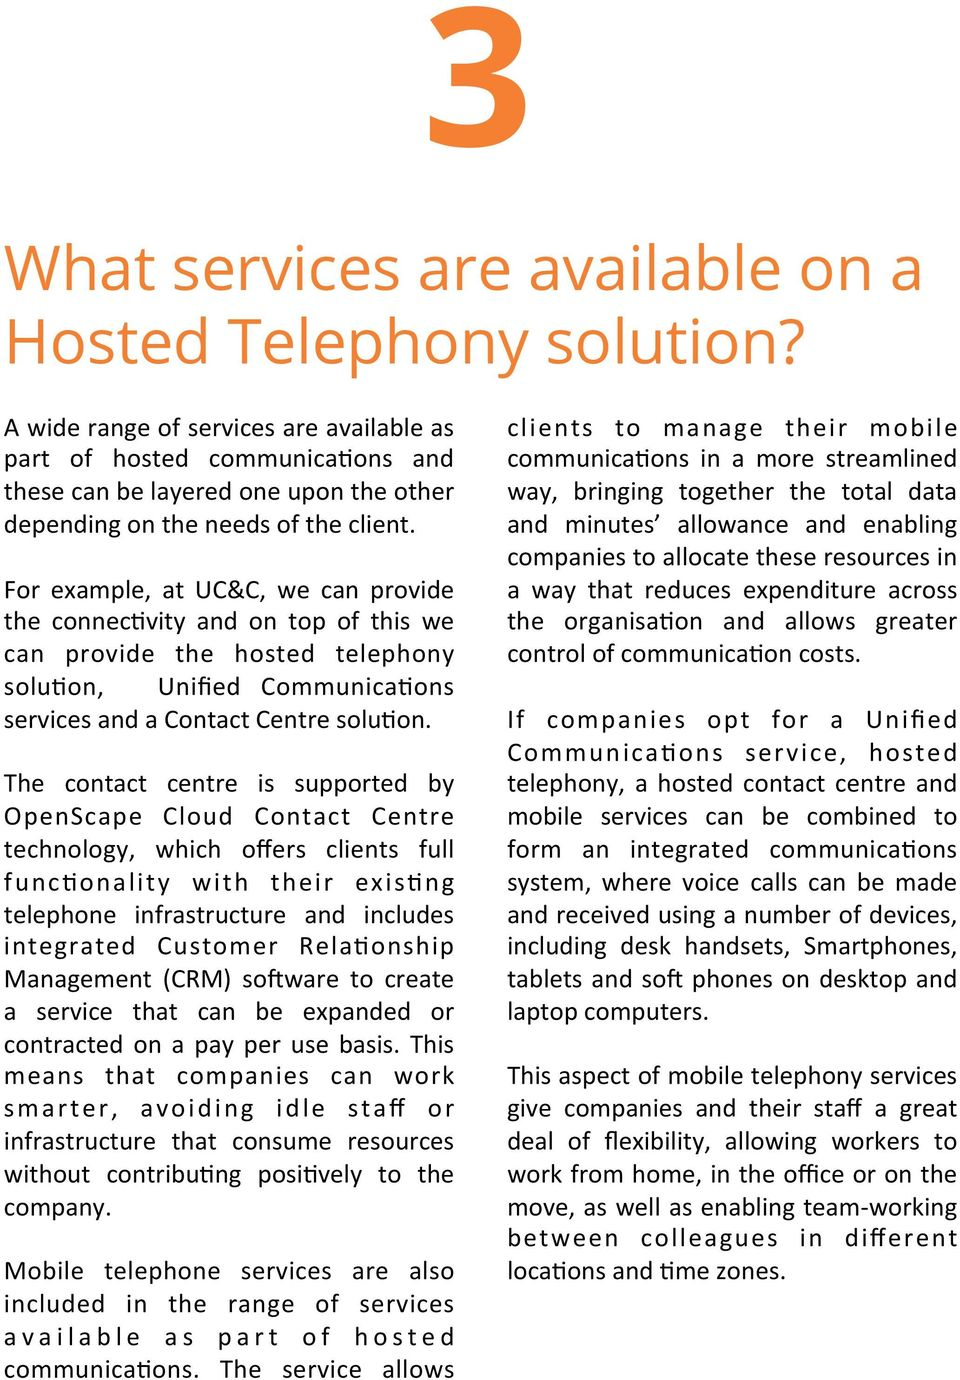 For example, at UC&C, we can provide the connec;vity and on top of this we can provide the hosted telephony solu;on, Unified Communica;ons services and a Contact Centre solu;on.